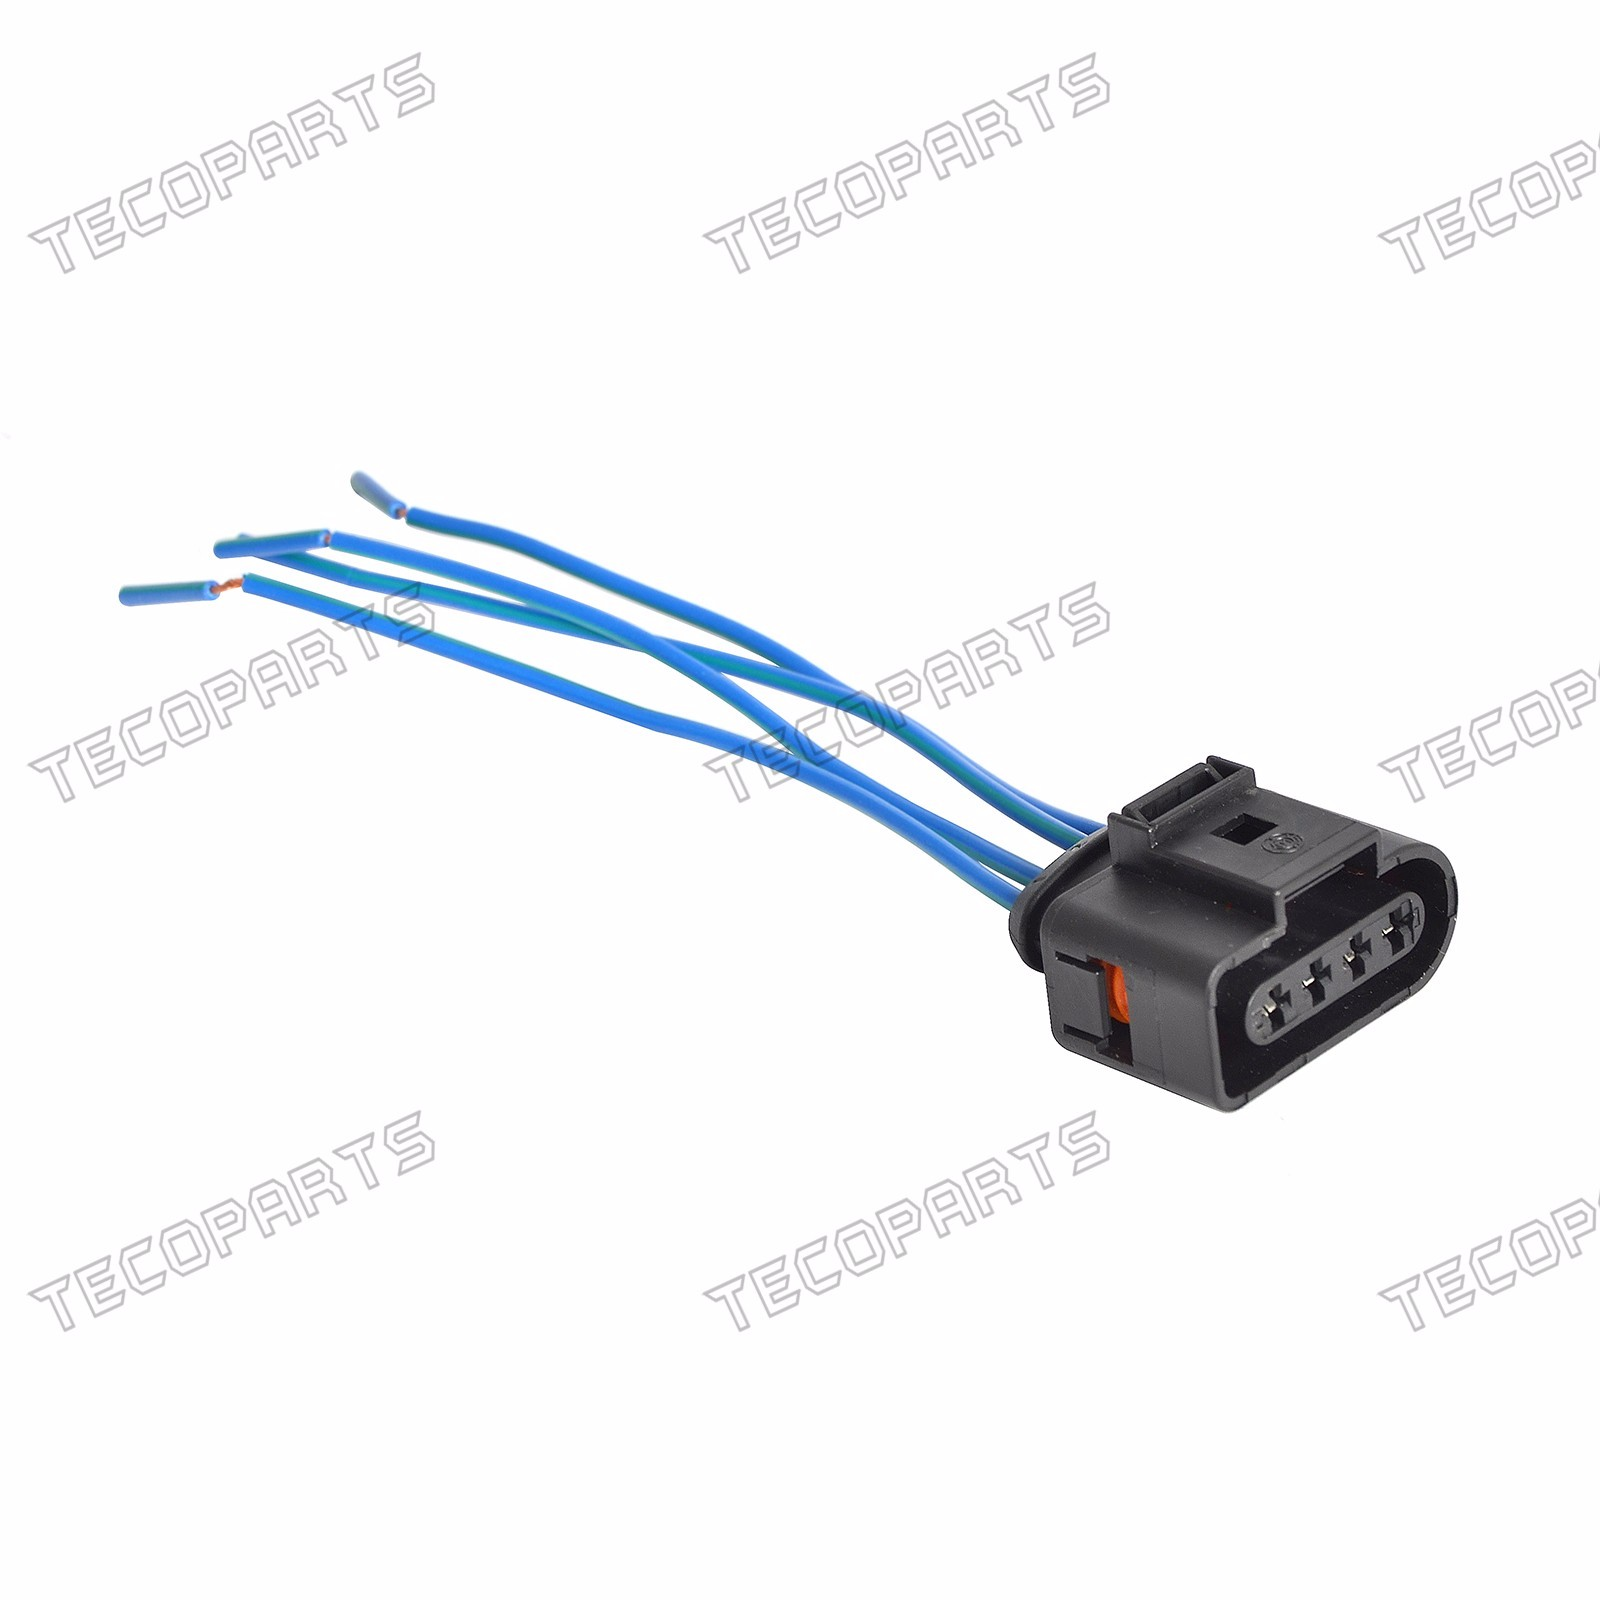 te pr024_(2) new set 4 ignition coil wiring harness connector repair kit for audi a4 1.8t ignition coil wiring harness at edmiracle.co